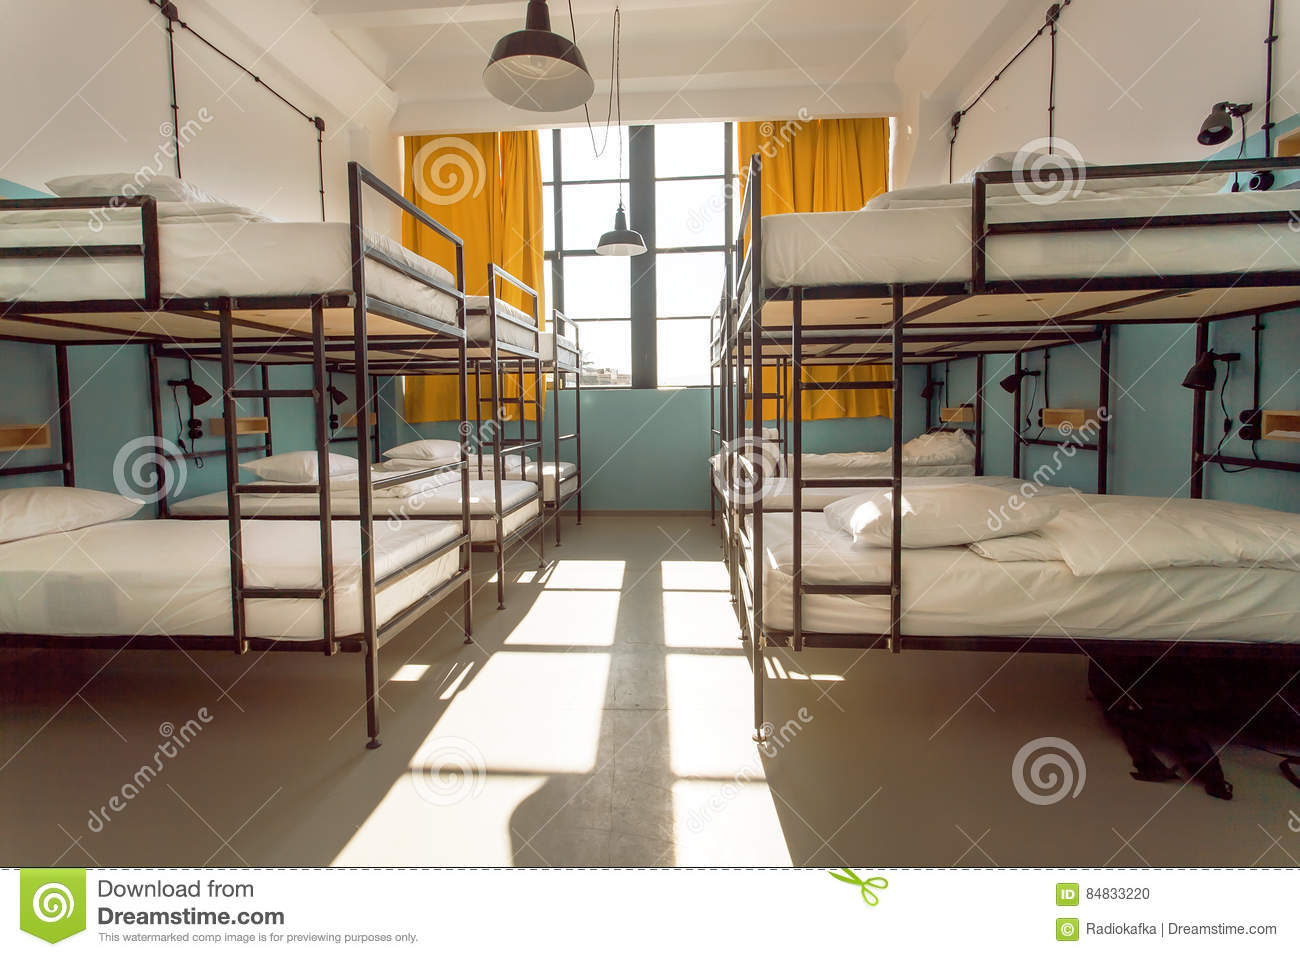 Backpackers stay in hotel with modern double decker beds for Room design double deck